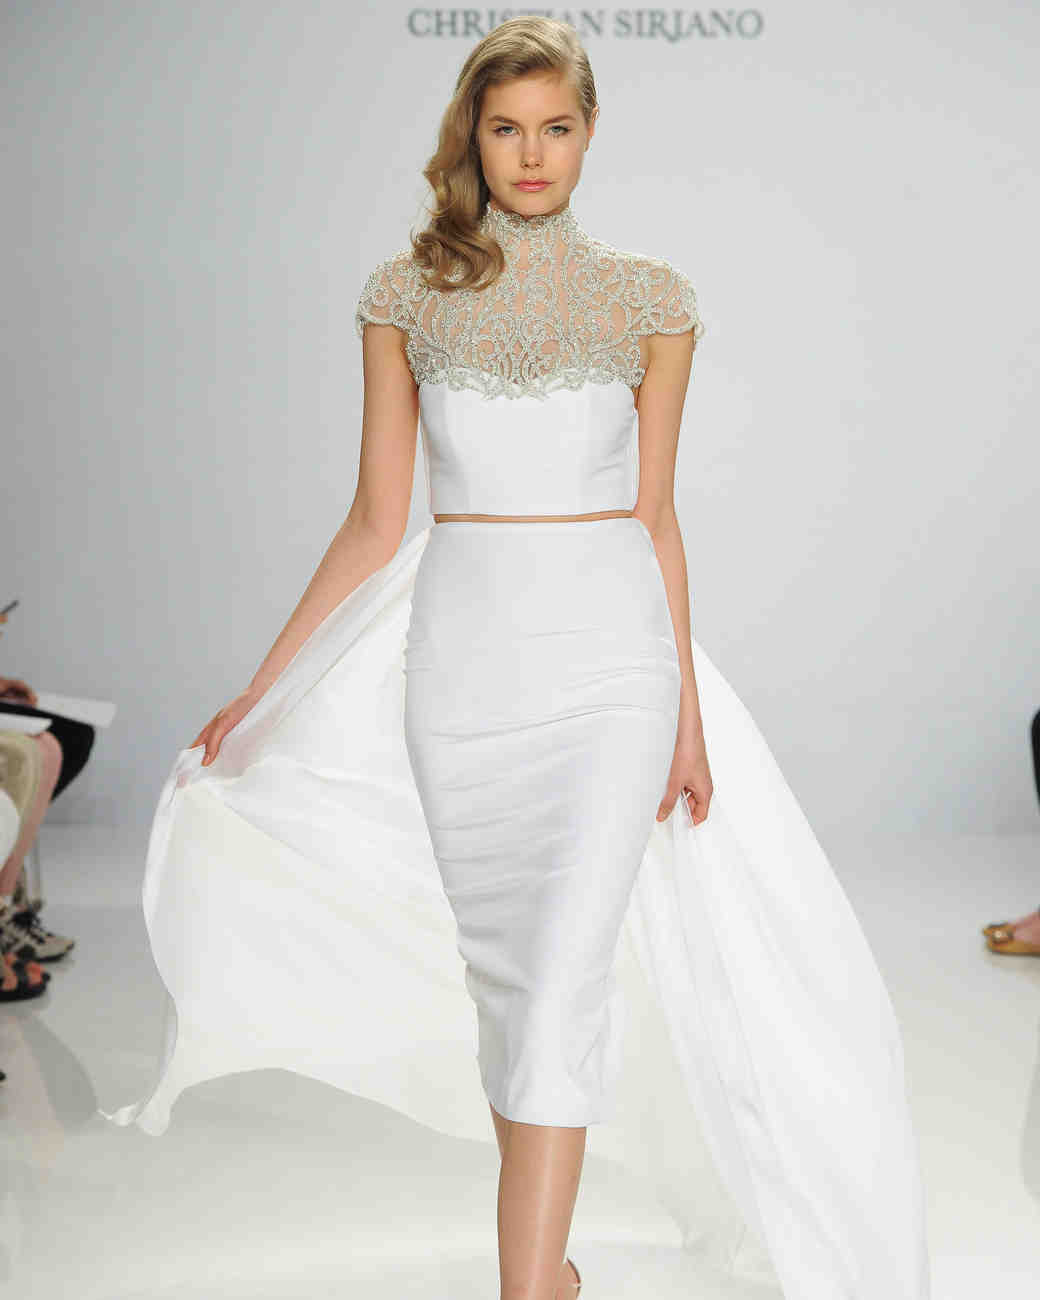 A two-pieces wedding dress